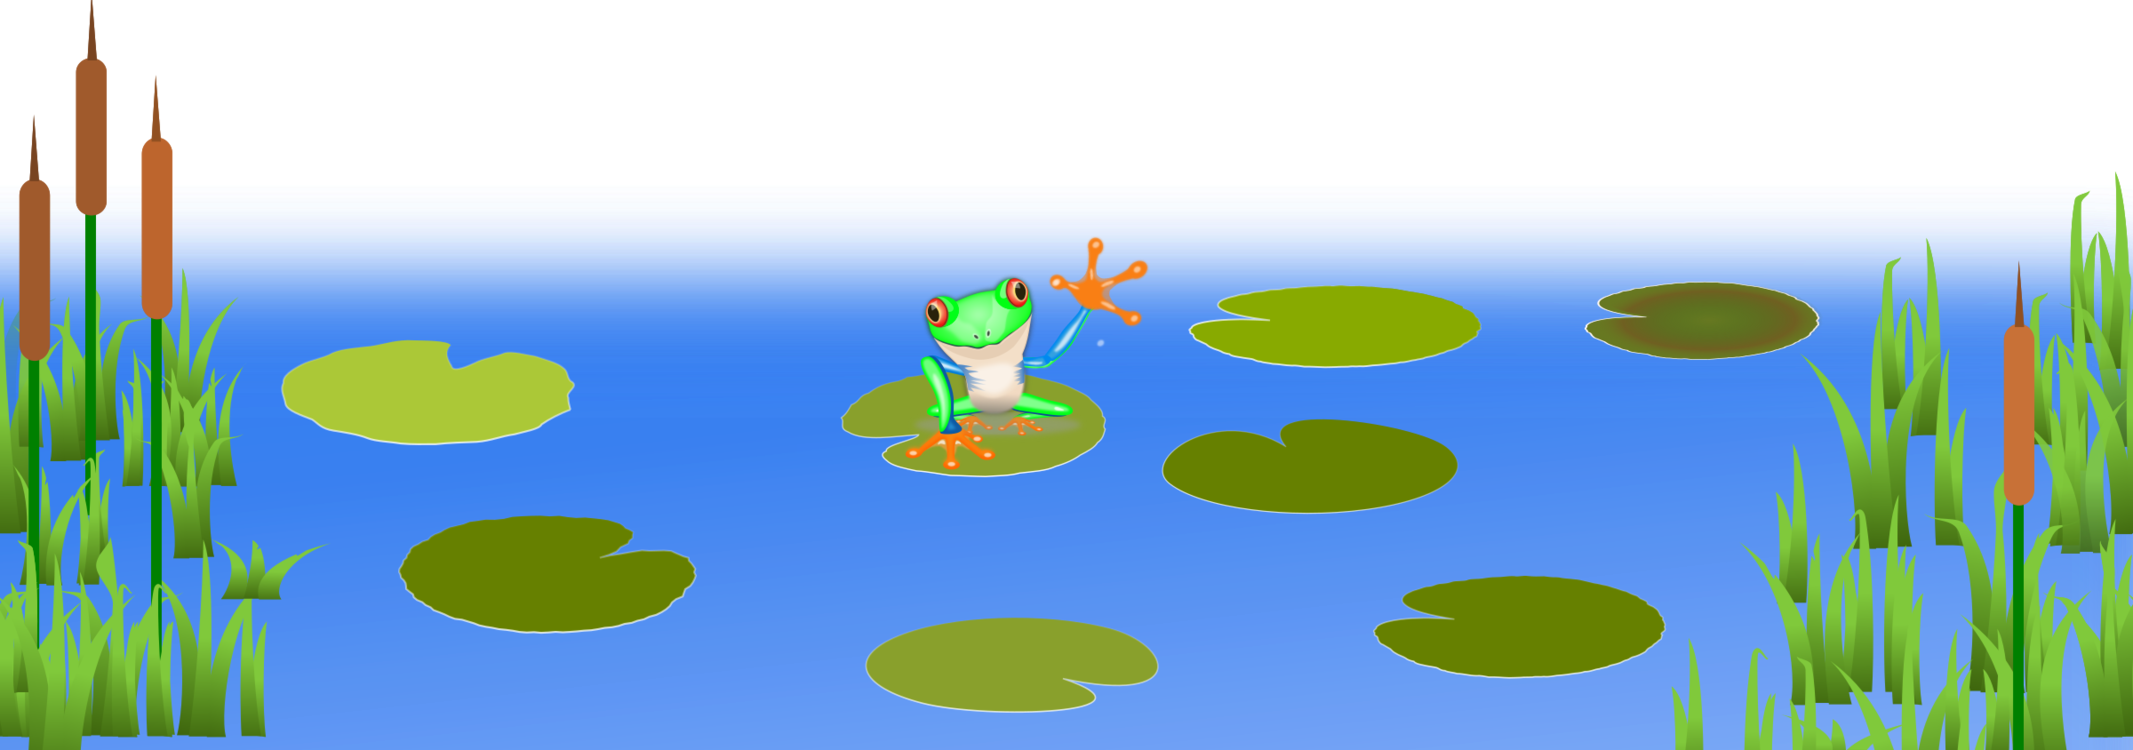 Pond transparent lily pad clipart. Frogs and fish amphibian